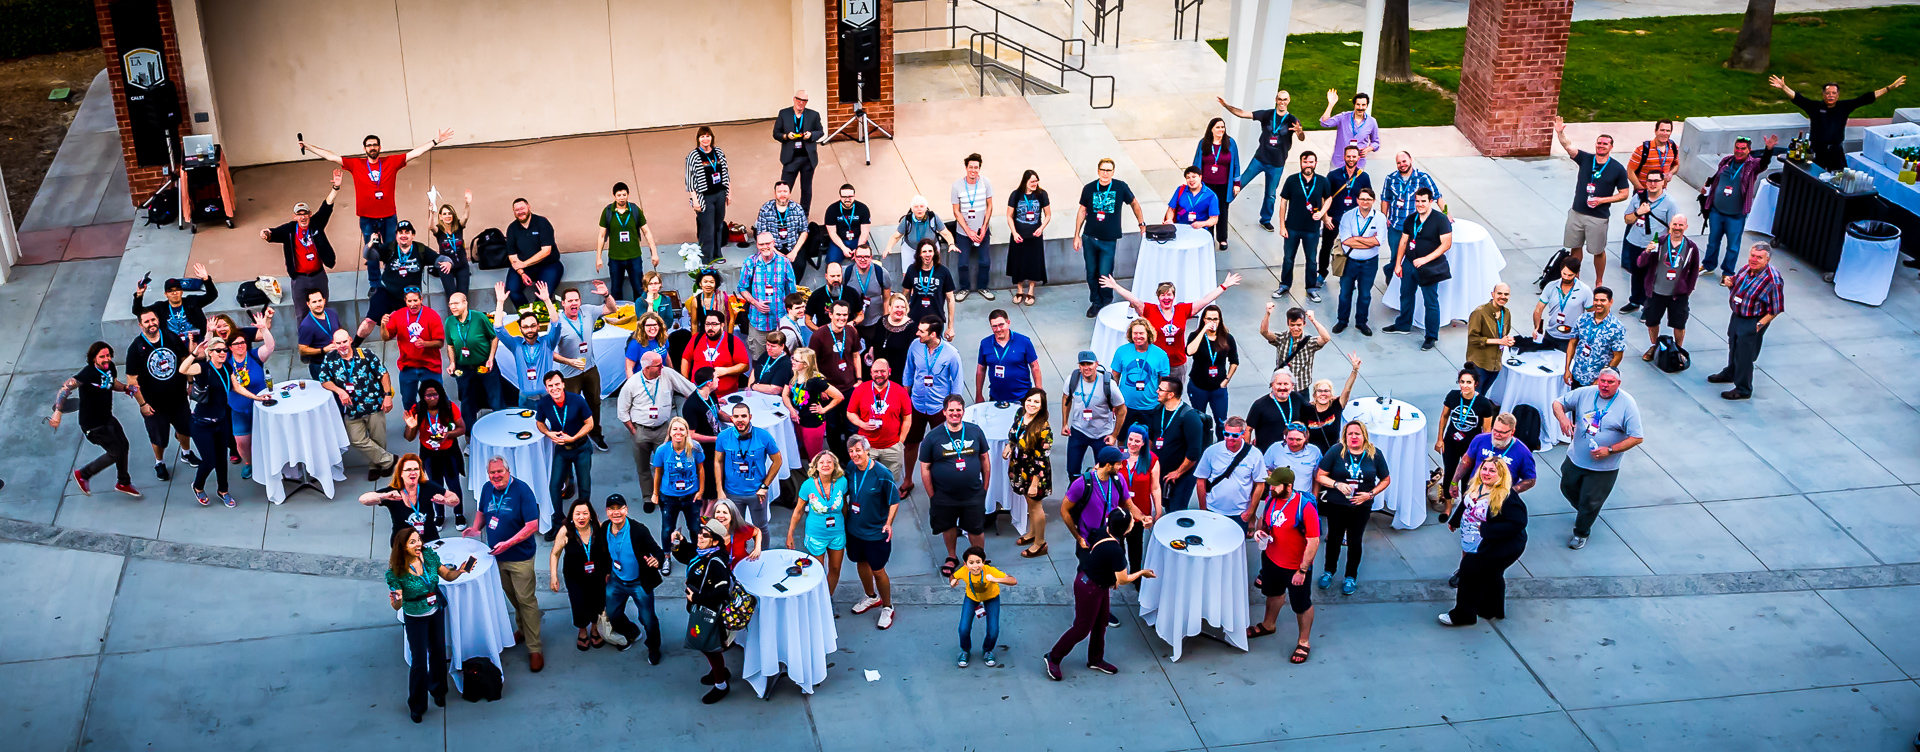 WordCamp Los Angeles 2017 attendees at the after party at Cal State LA. Wide group photo taken from a balcony above.